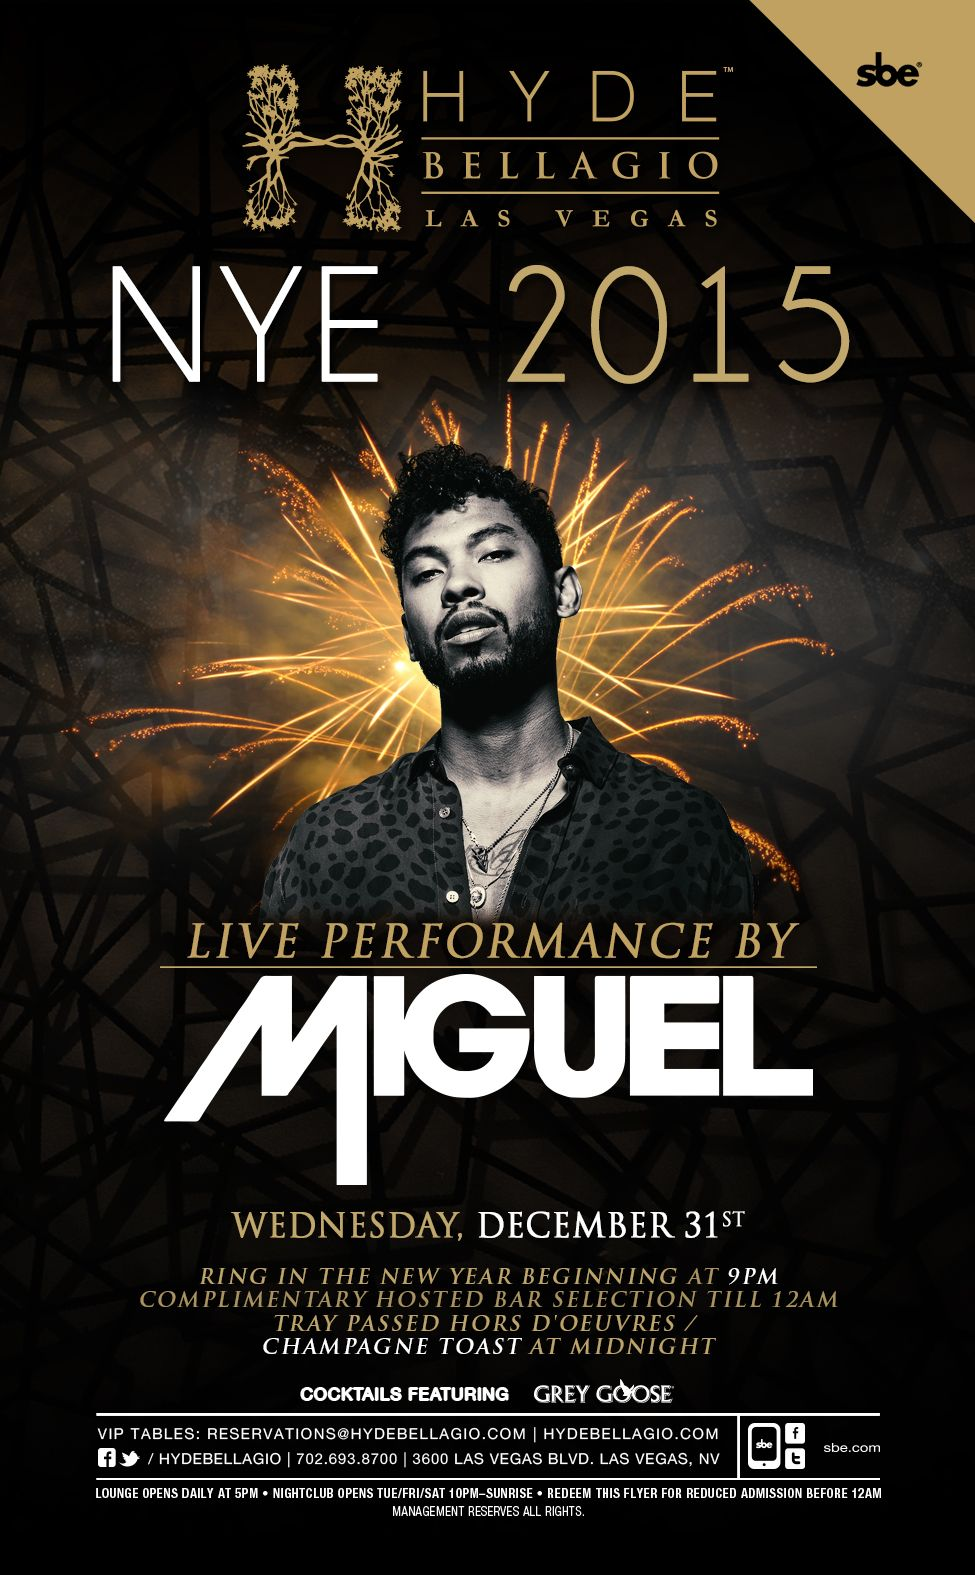 Celebrate New Year's Eve with Miguel at Hyde Bellagio